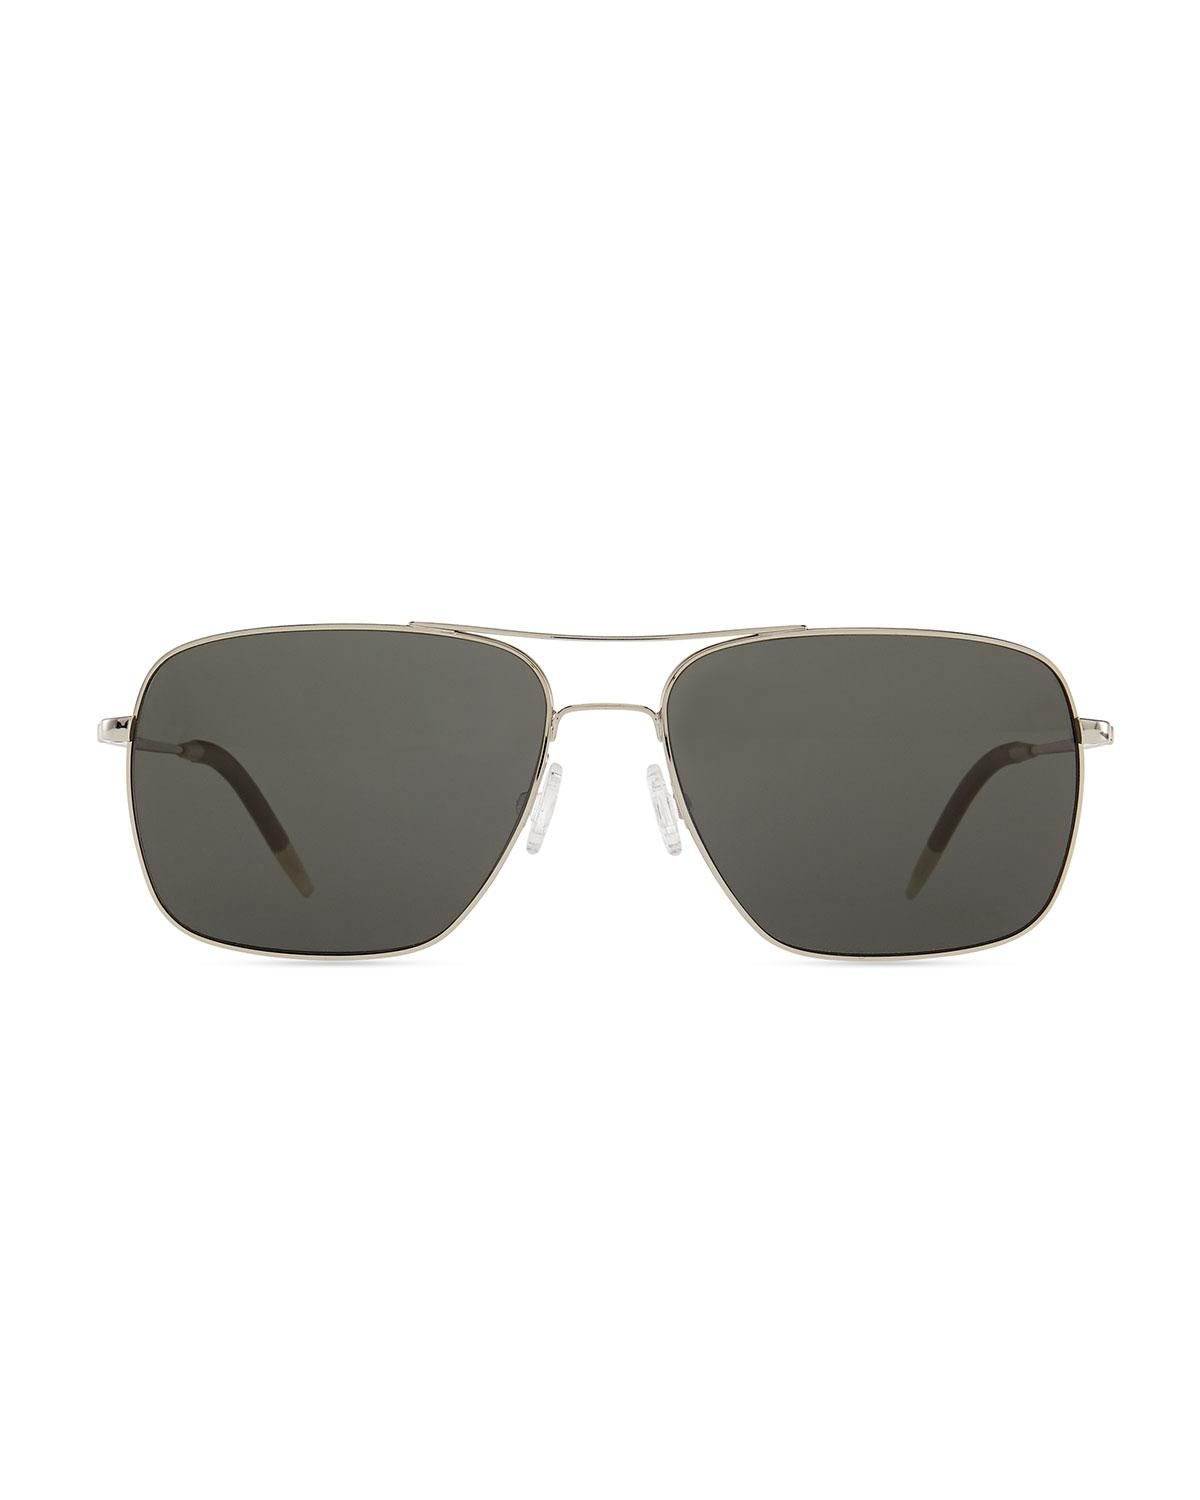 dd9003ebb20 Lyst - Oliver Peoples Clifton Polarized Sunglasses in Metallic for Men -  Save 10.0%